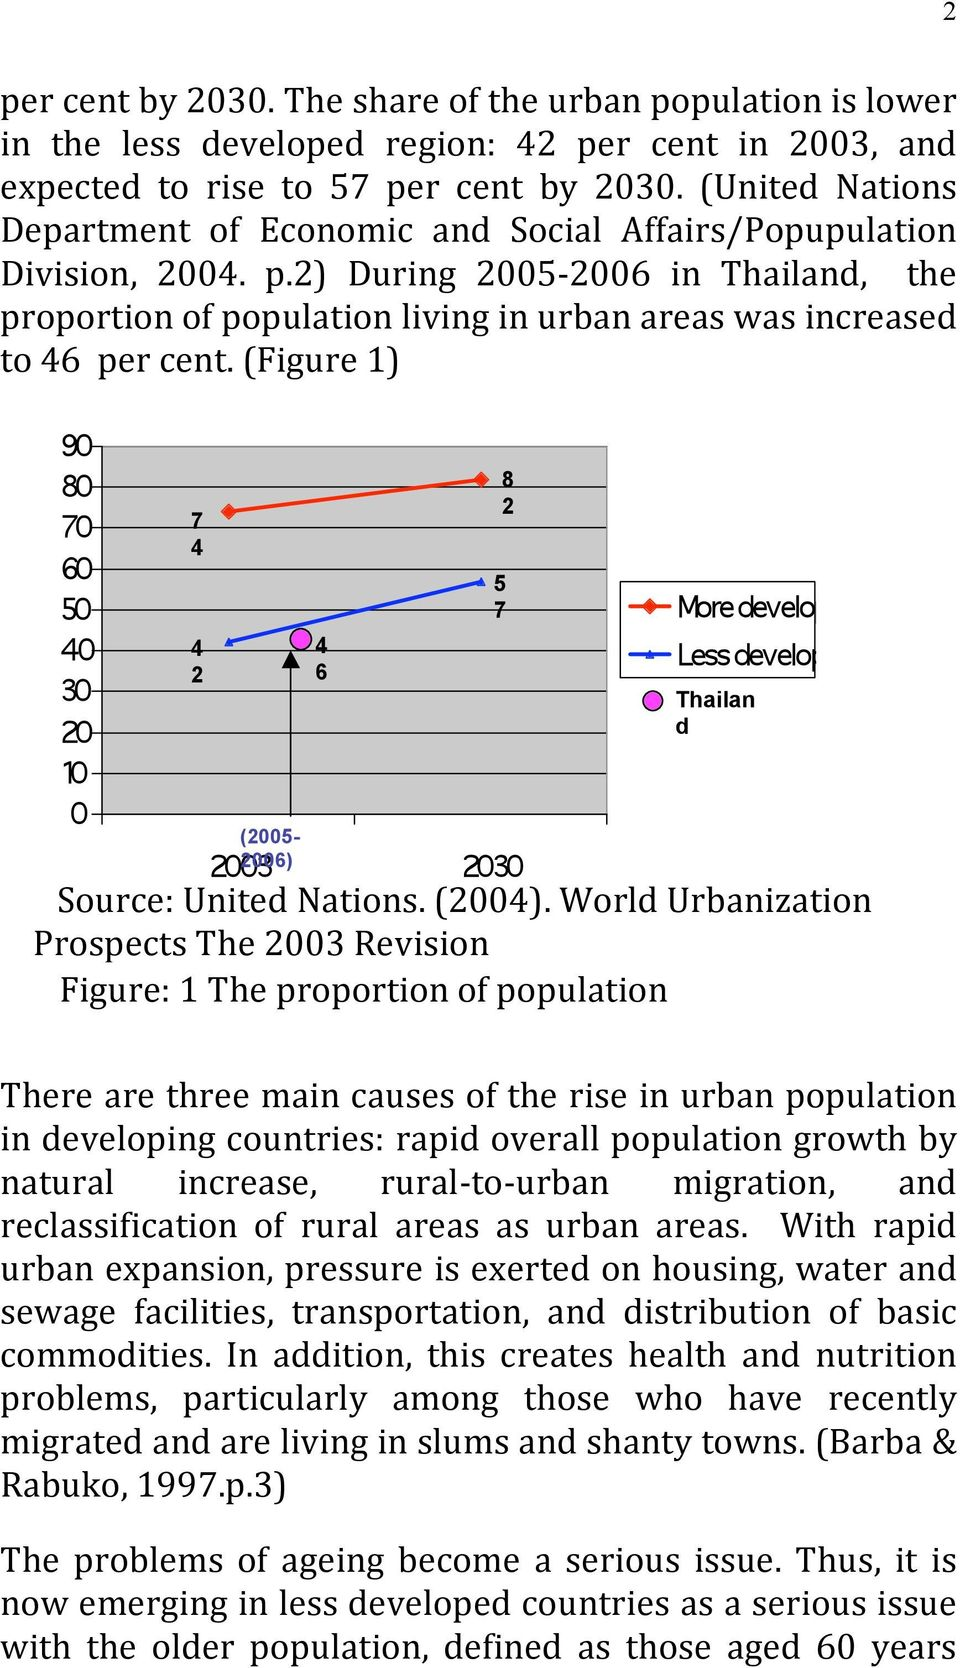 2) During 2005 2006 in Thailand, the proportion of population living in urban areas was increased to 46 per cent. (Figure 1) 7 4 4 2 4 6 8 2 5 7 Thailan d (2005-2006) Source: United Nations. (2004).